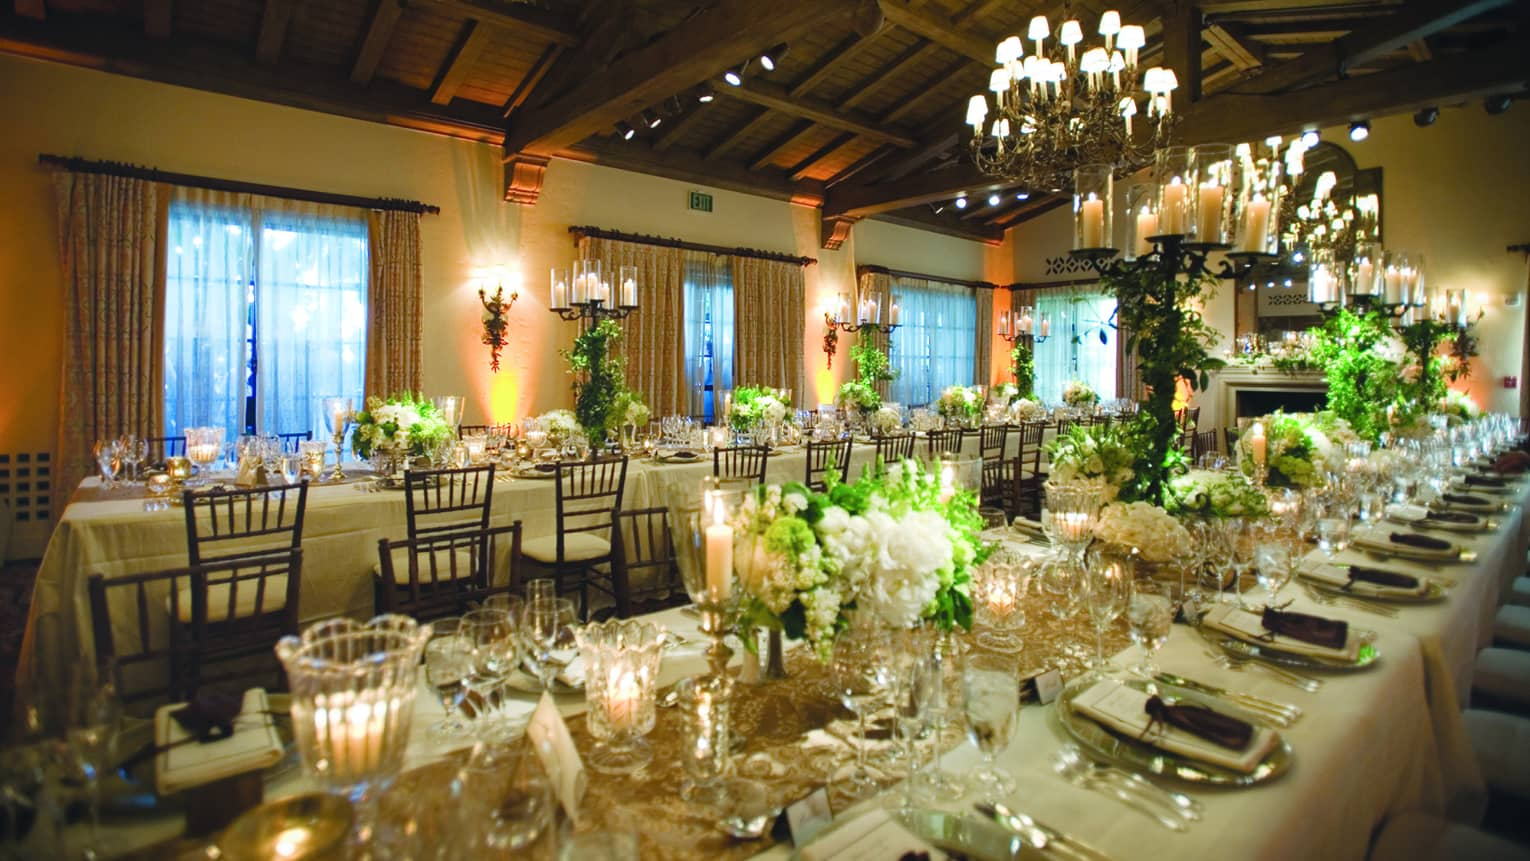 Long wedding banquet tables with glowing candles, white flowers